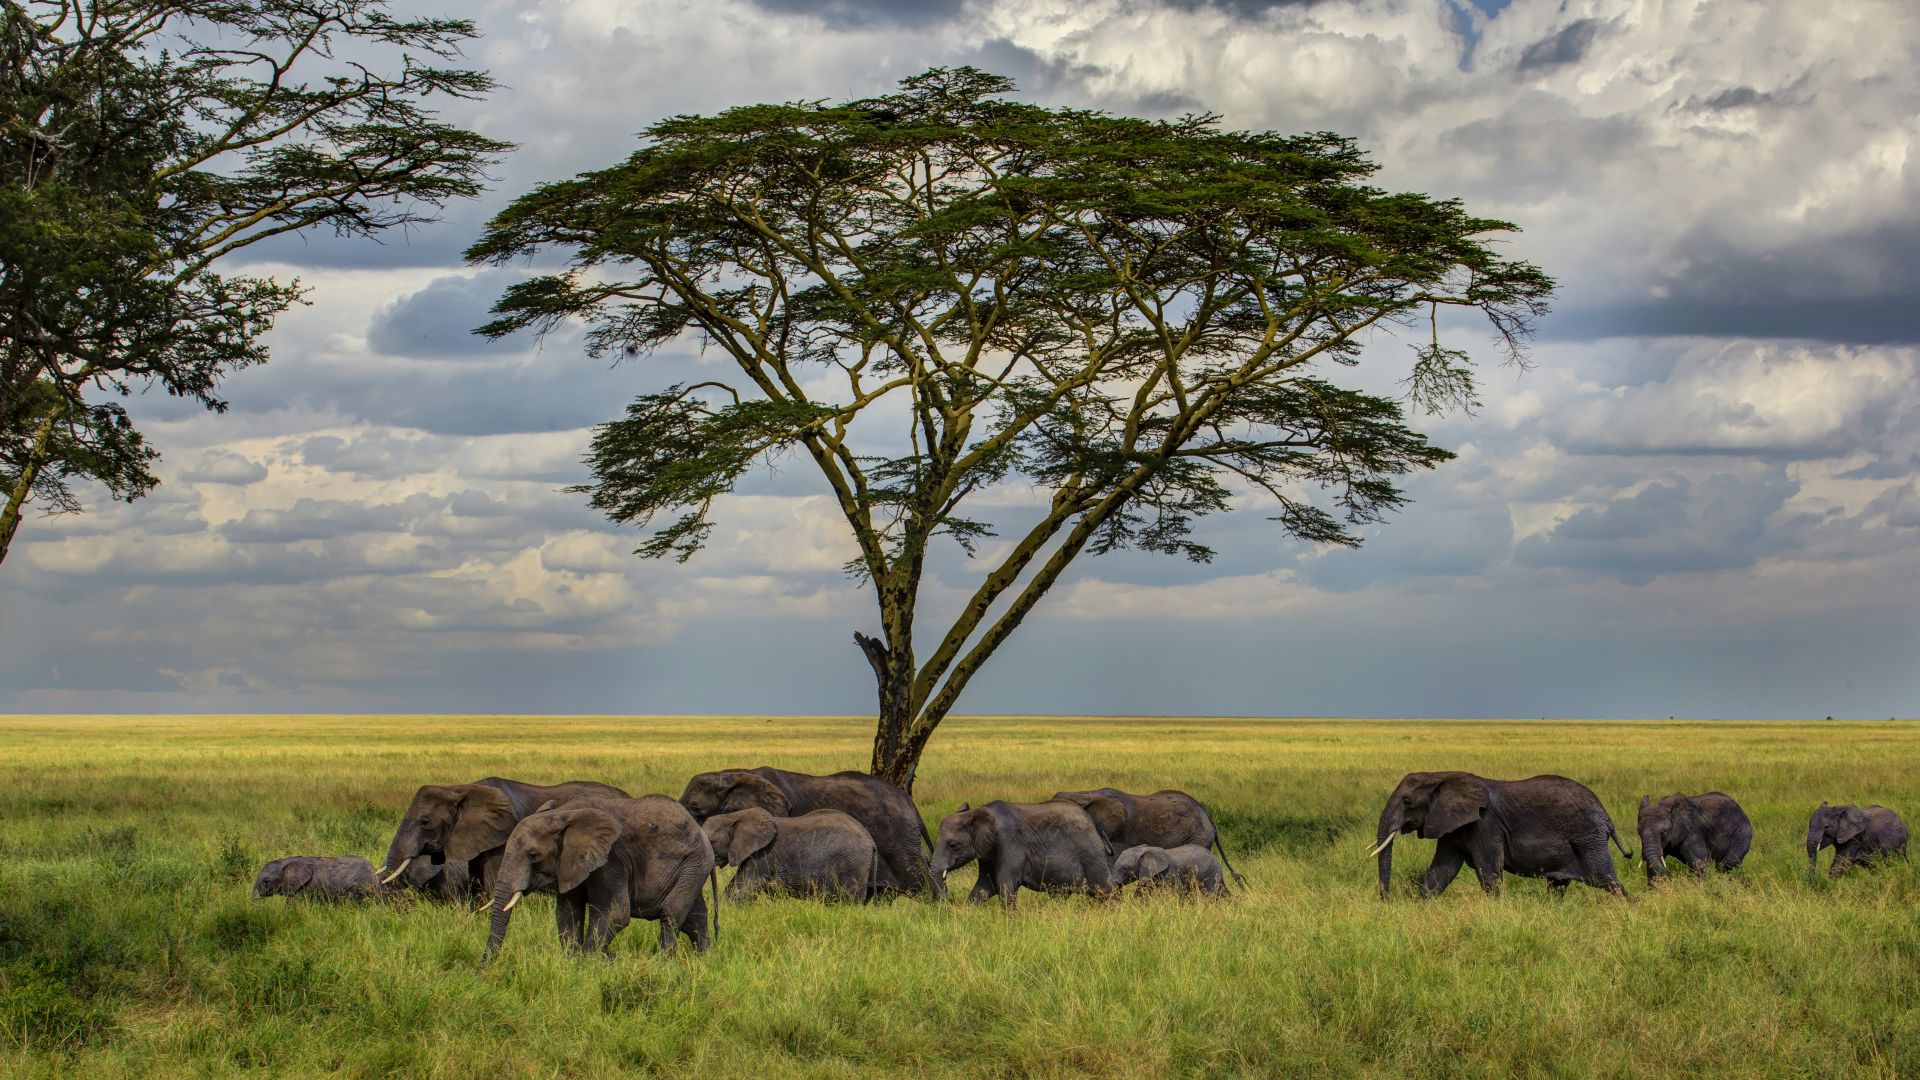 Слон, 5k, 4k, саванны, дерево, облака, Elephant, 5k, 4k wallpaper, savanna, tree, clouds (horizontal)